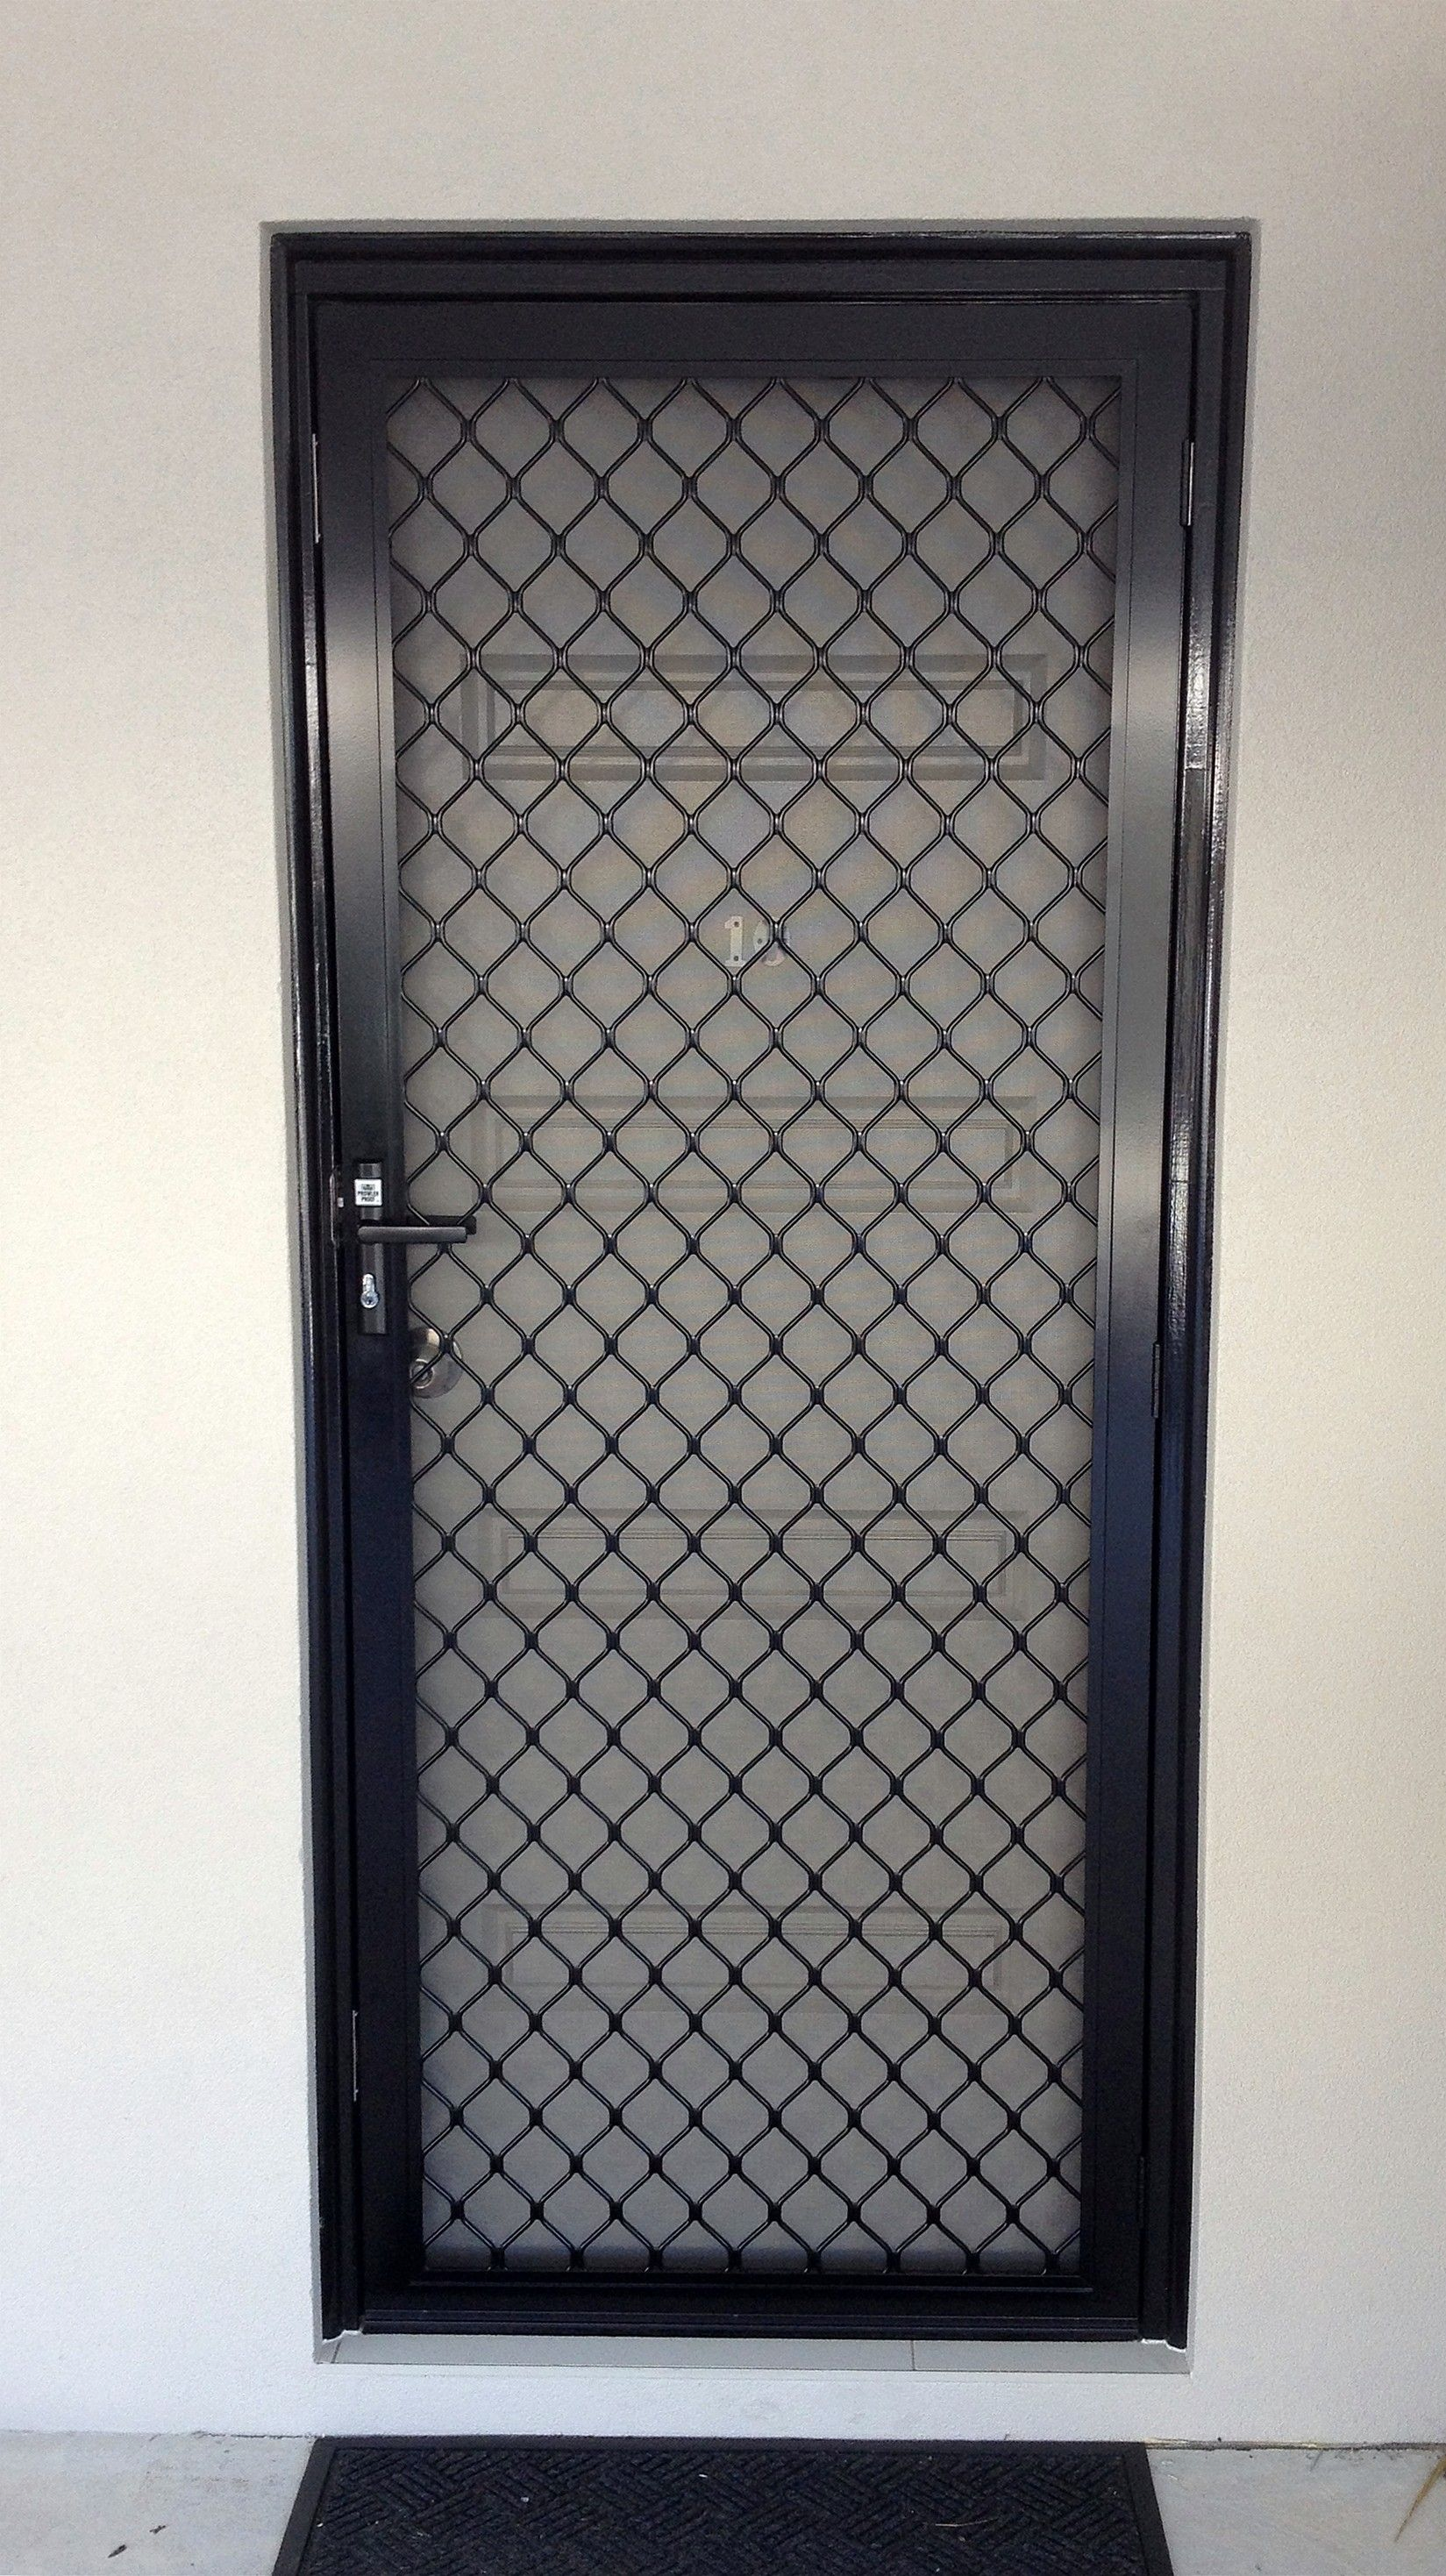 Black Diamond Grille Security Screen Door Wrought Iron